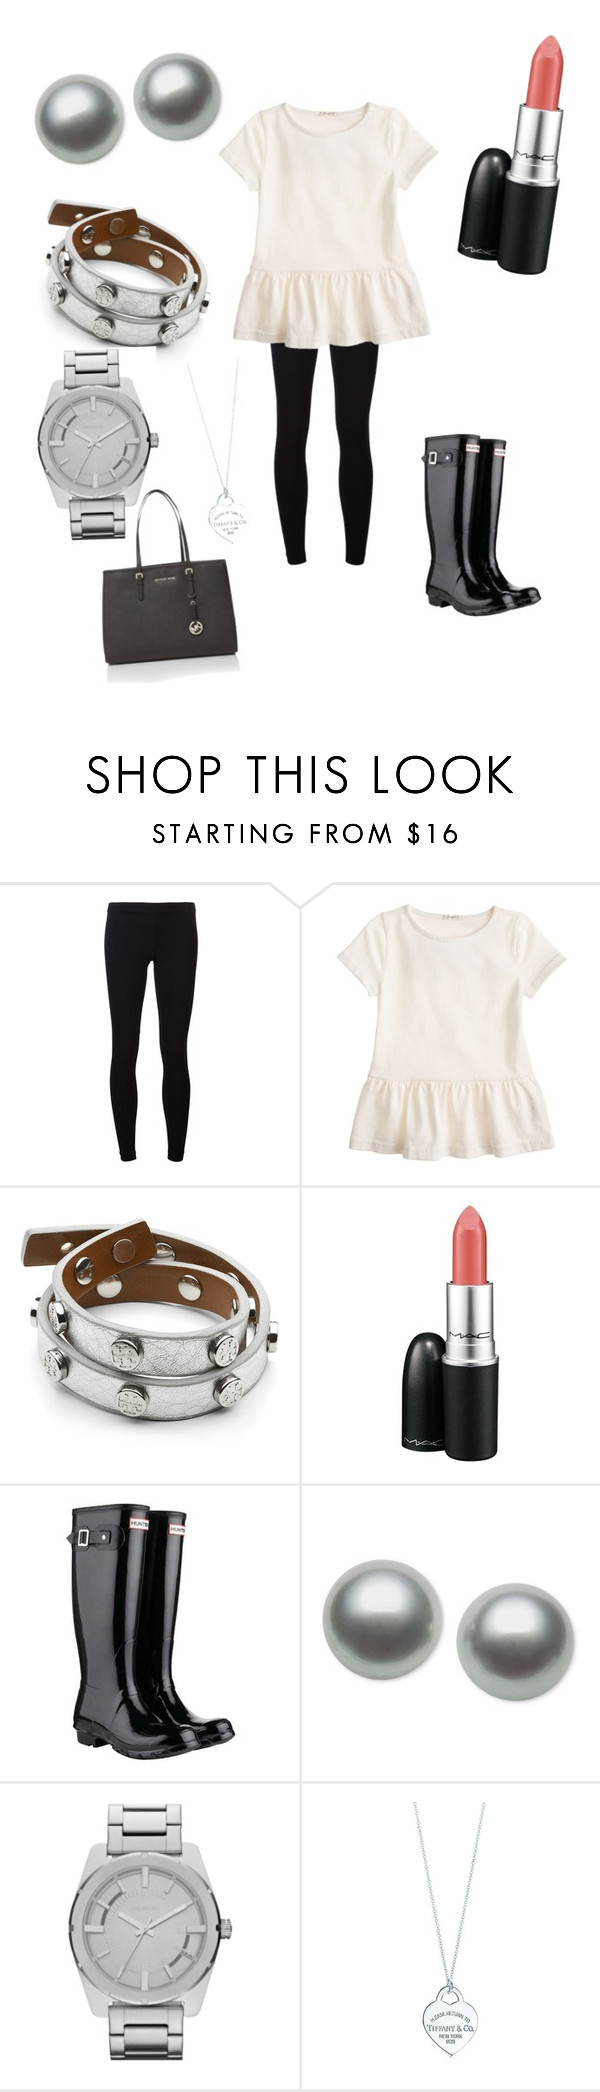 """black&creme"" by morgansumicek ❤ liked on Polyvore featuring James Perse, J.Crew, Tory Burch, MAC Cosmetics, Hunter, Belle de Mer, Diesel, Tiffany & Co. and Michael Kors"